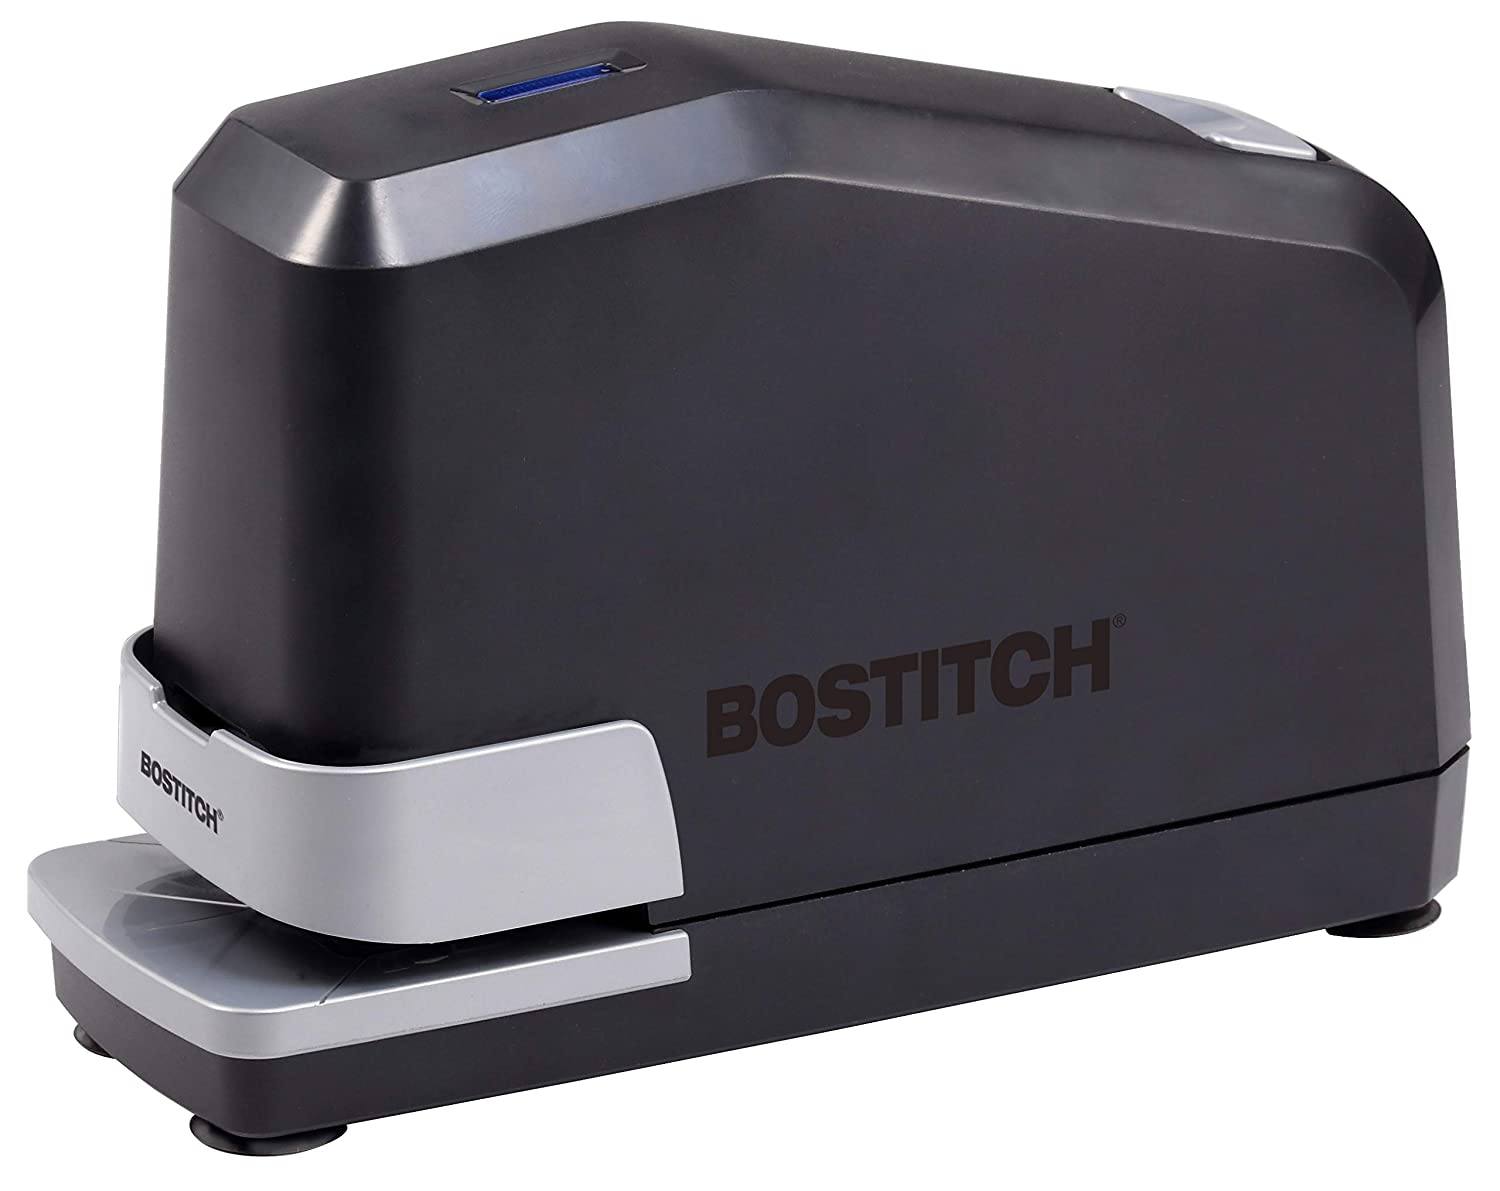 Stanley Bostitch Electric Full Strip 20 Sheet Capacity Stapler With Anti-Jam Mechanism (02210)